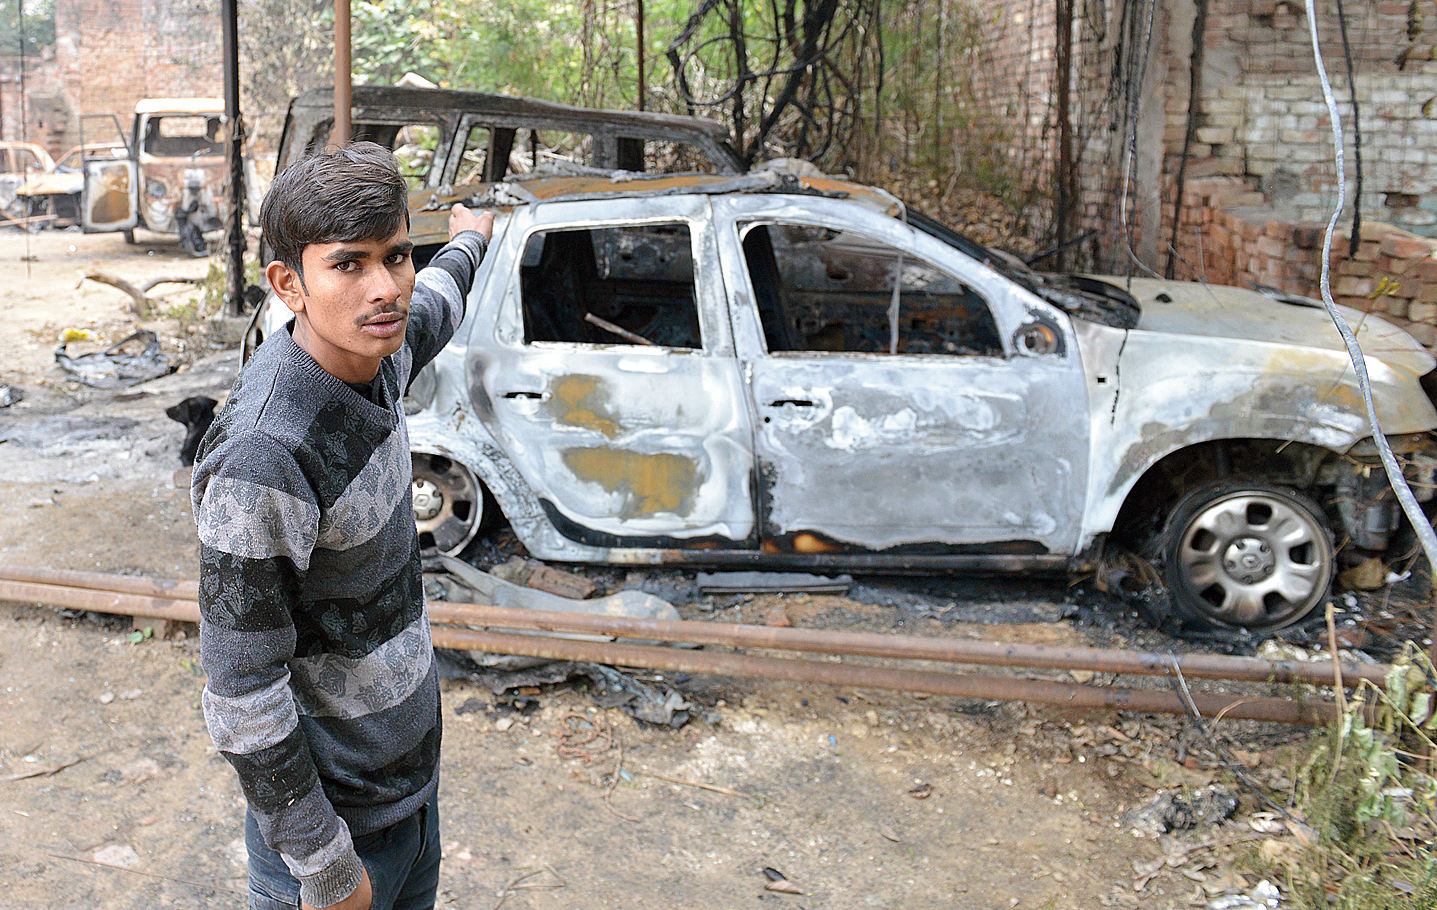 Bharat Ram, the farmhouse guard, points at some of the vehicles set on fire allegedly by policemen. He said they let him go when he revealed his identity